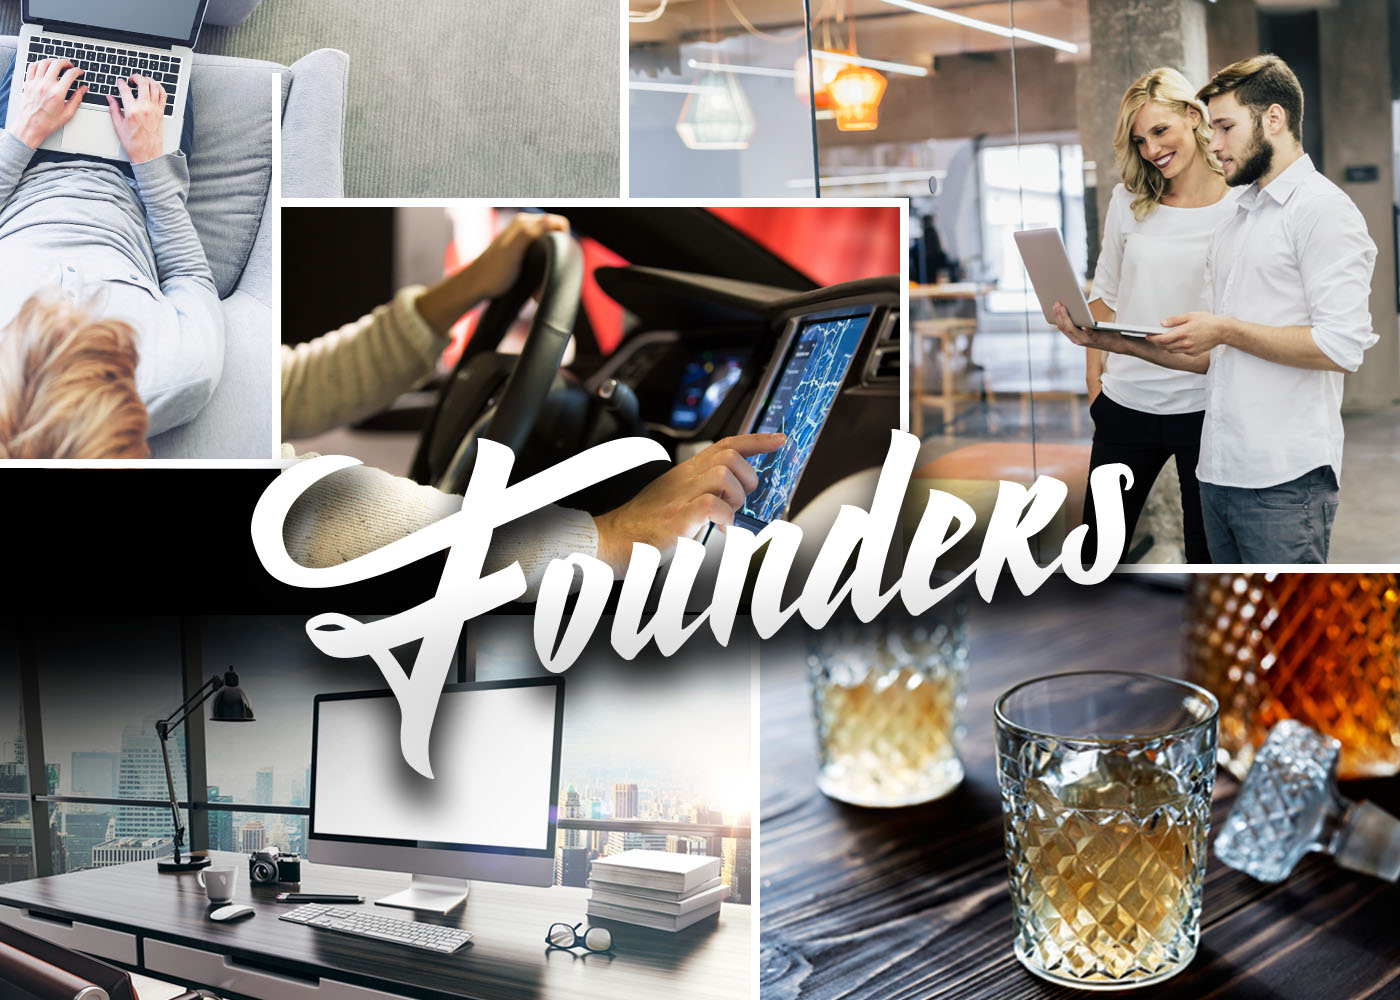 Services Provided - Conference Room • Kitchen • Cleaning Service Parking Option Available • Crystal GlasswareCustomizable Furniture •Tesla accessSound Masking •Fastest internet in Denver